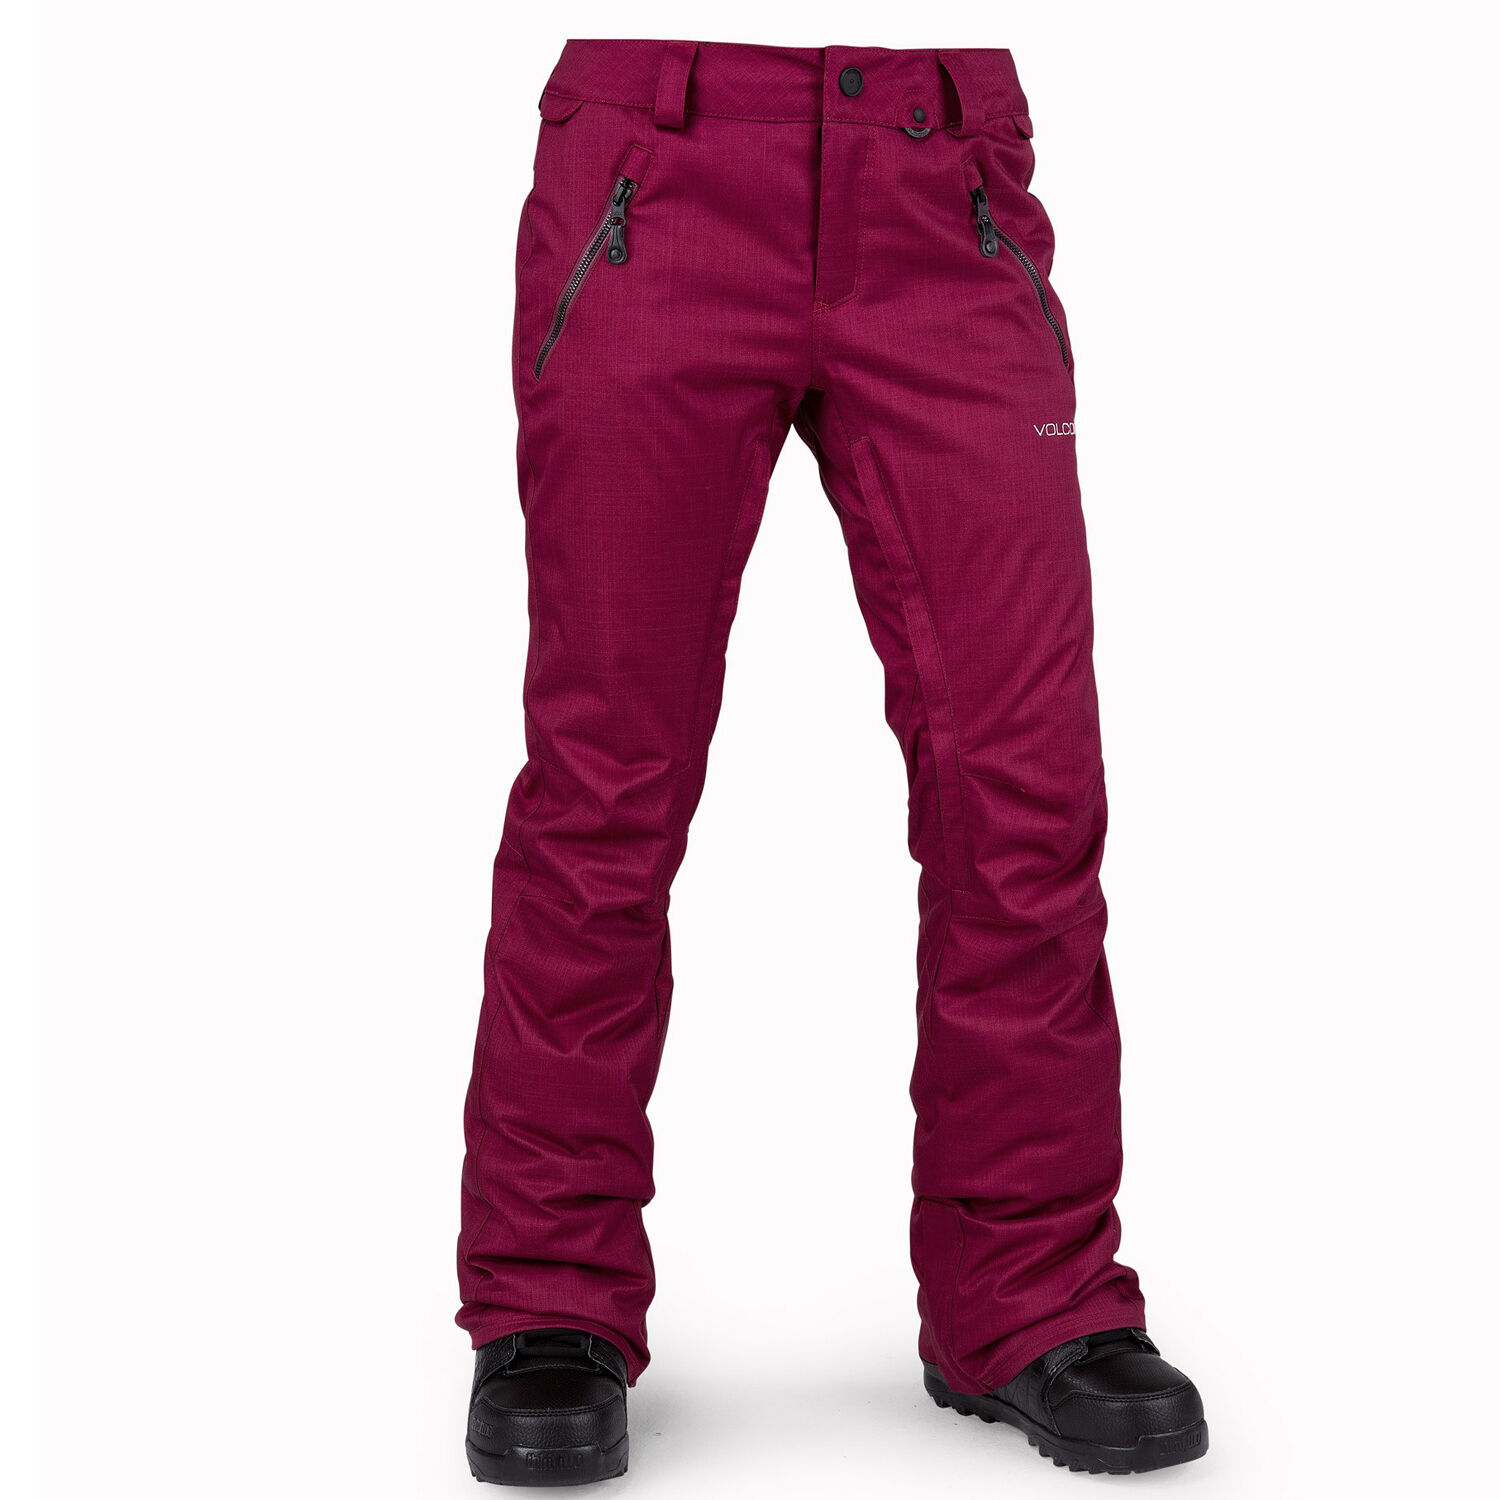 VOLCOM Womens 2017 Snowboard Snow Mulberry CALICO INSULATED PANT